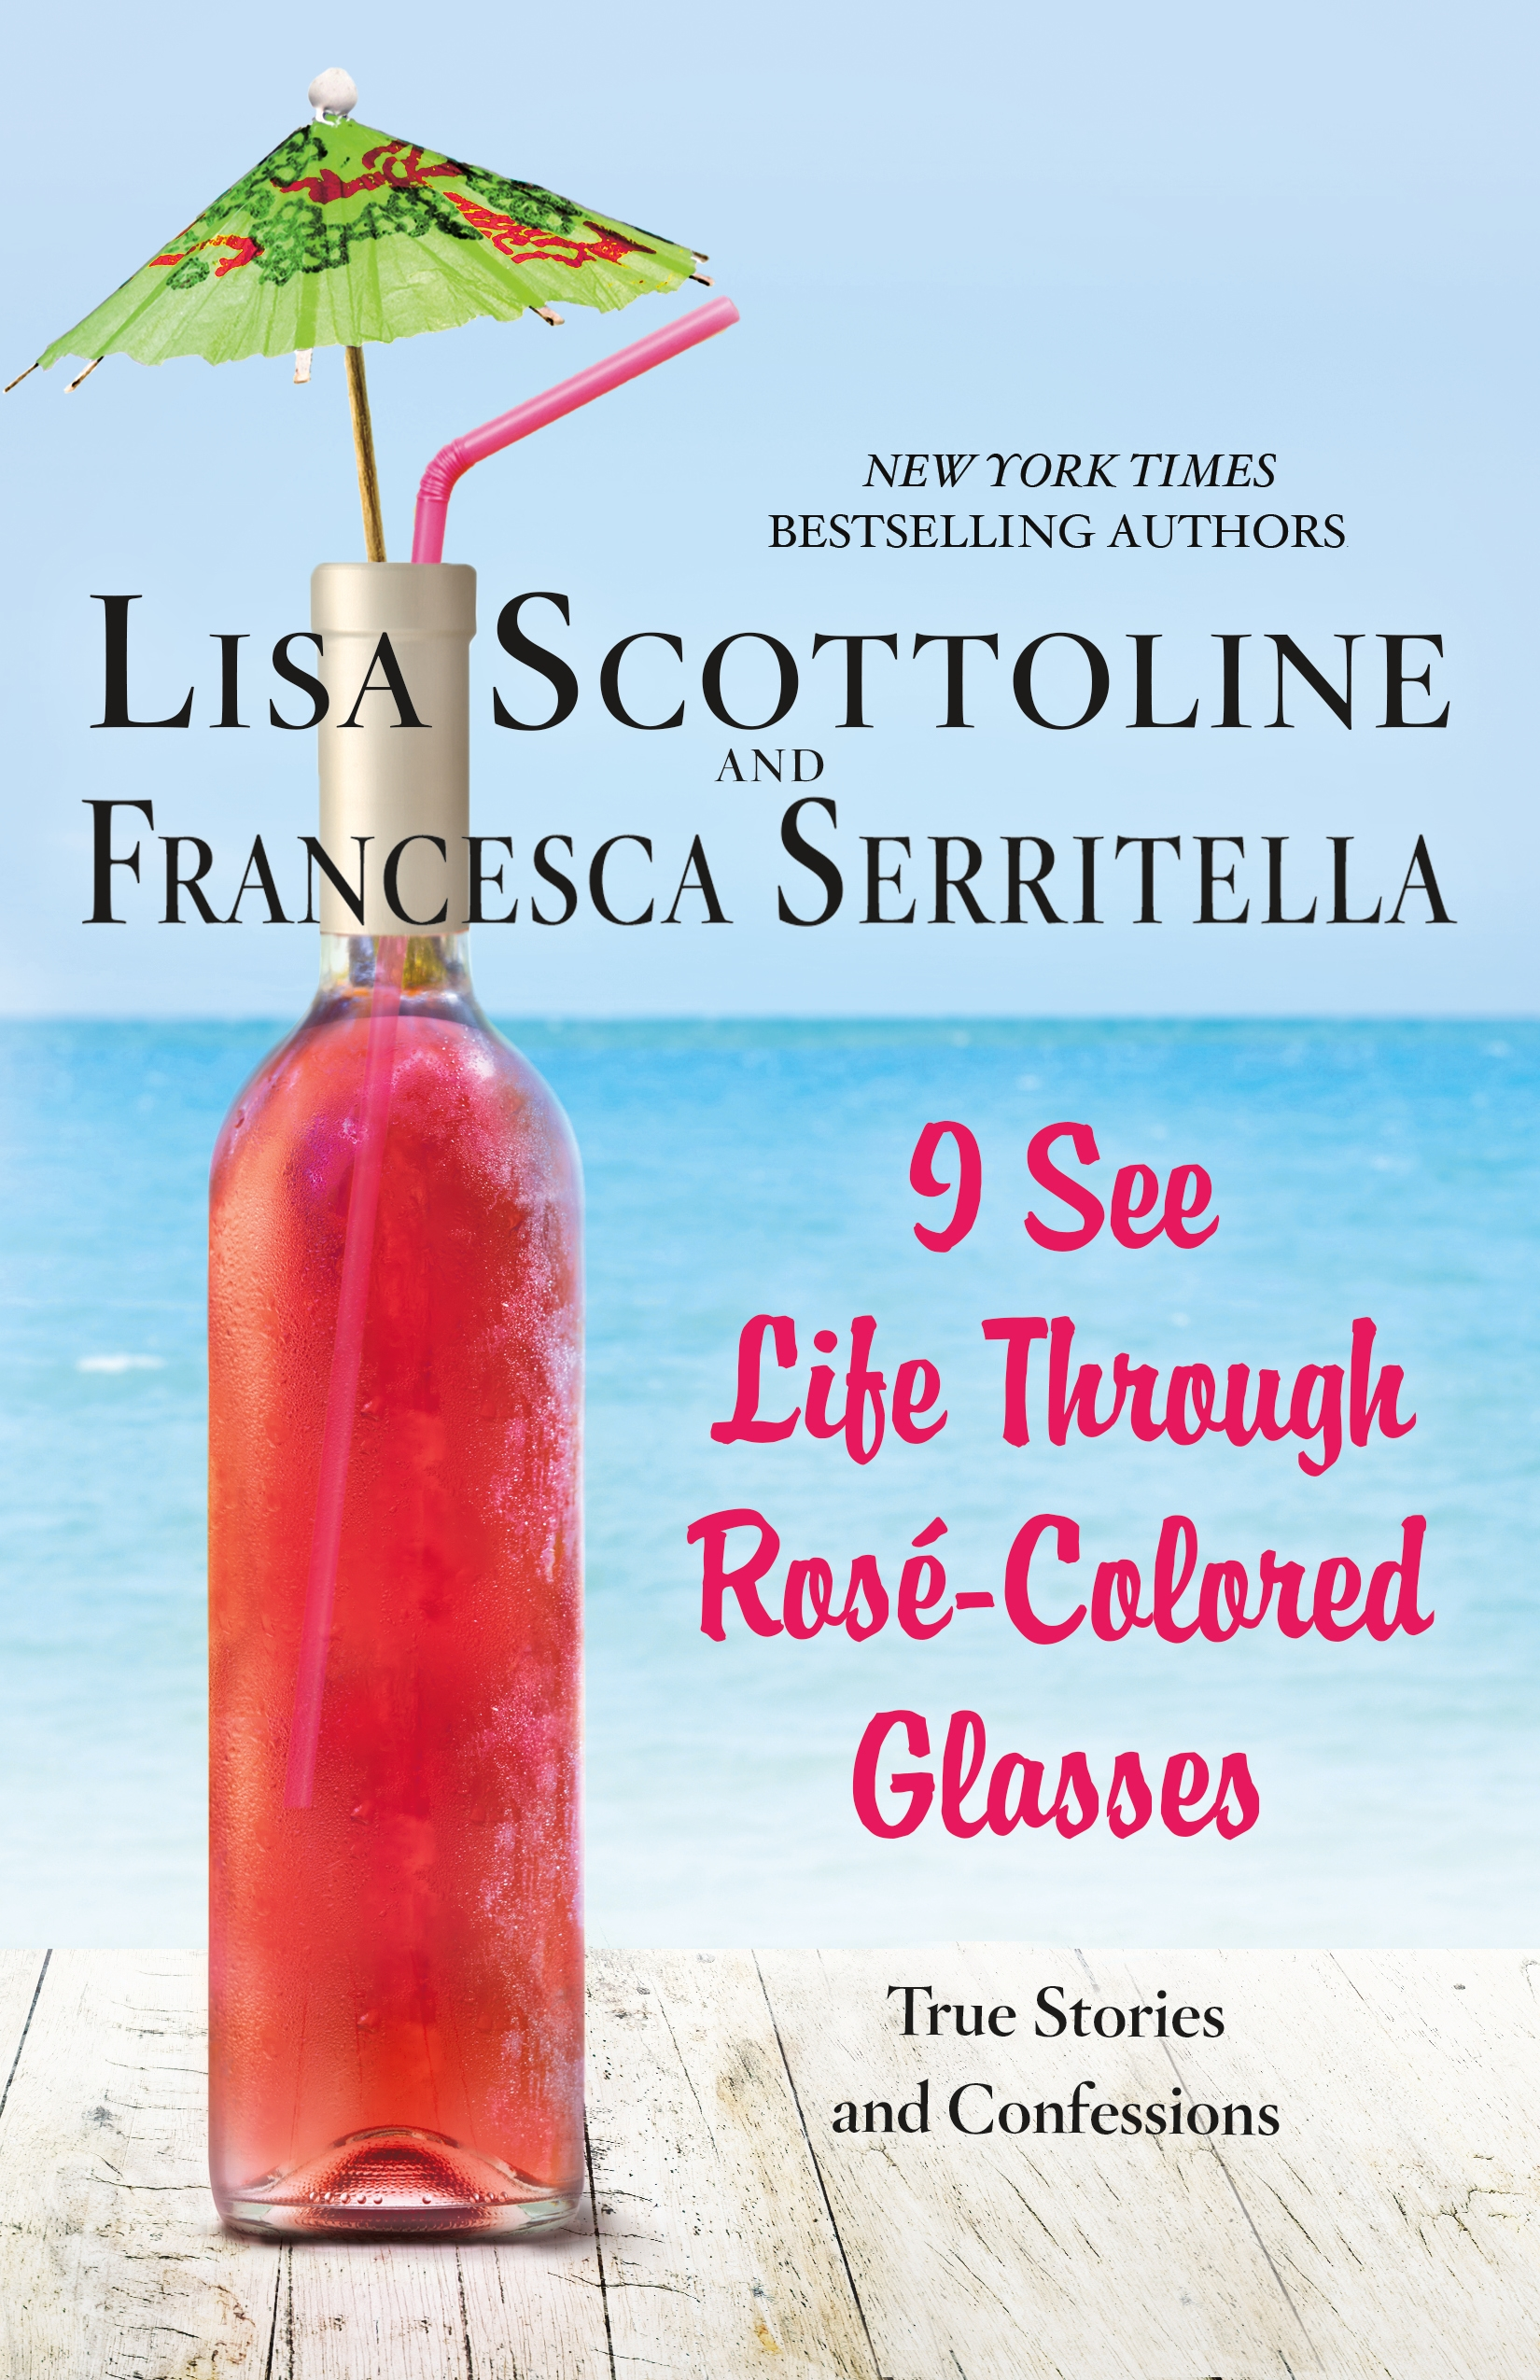 I See Life Through Rosé-Colored Glasses True Stories and Confessions